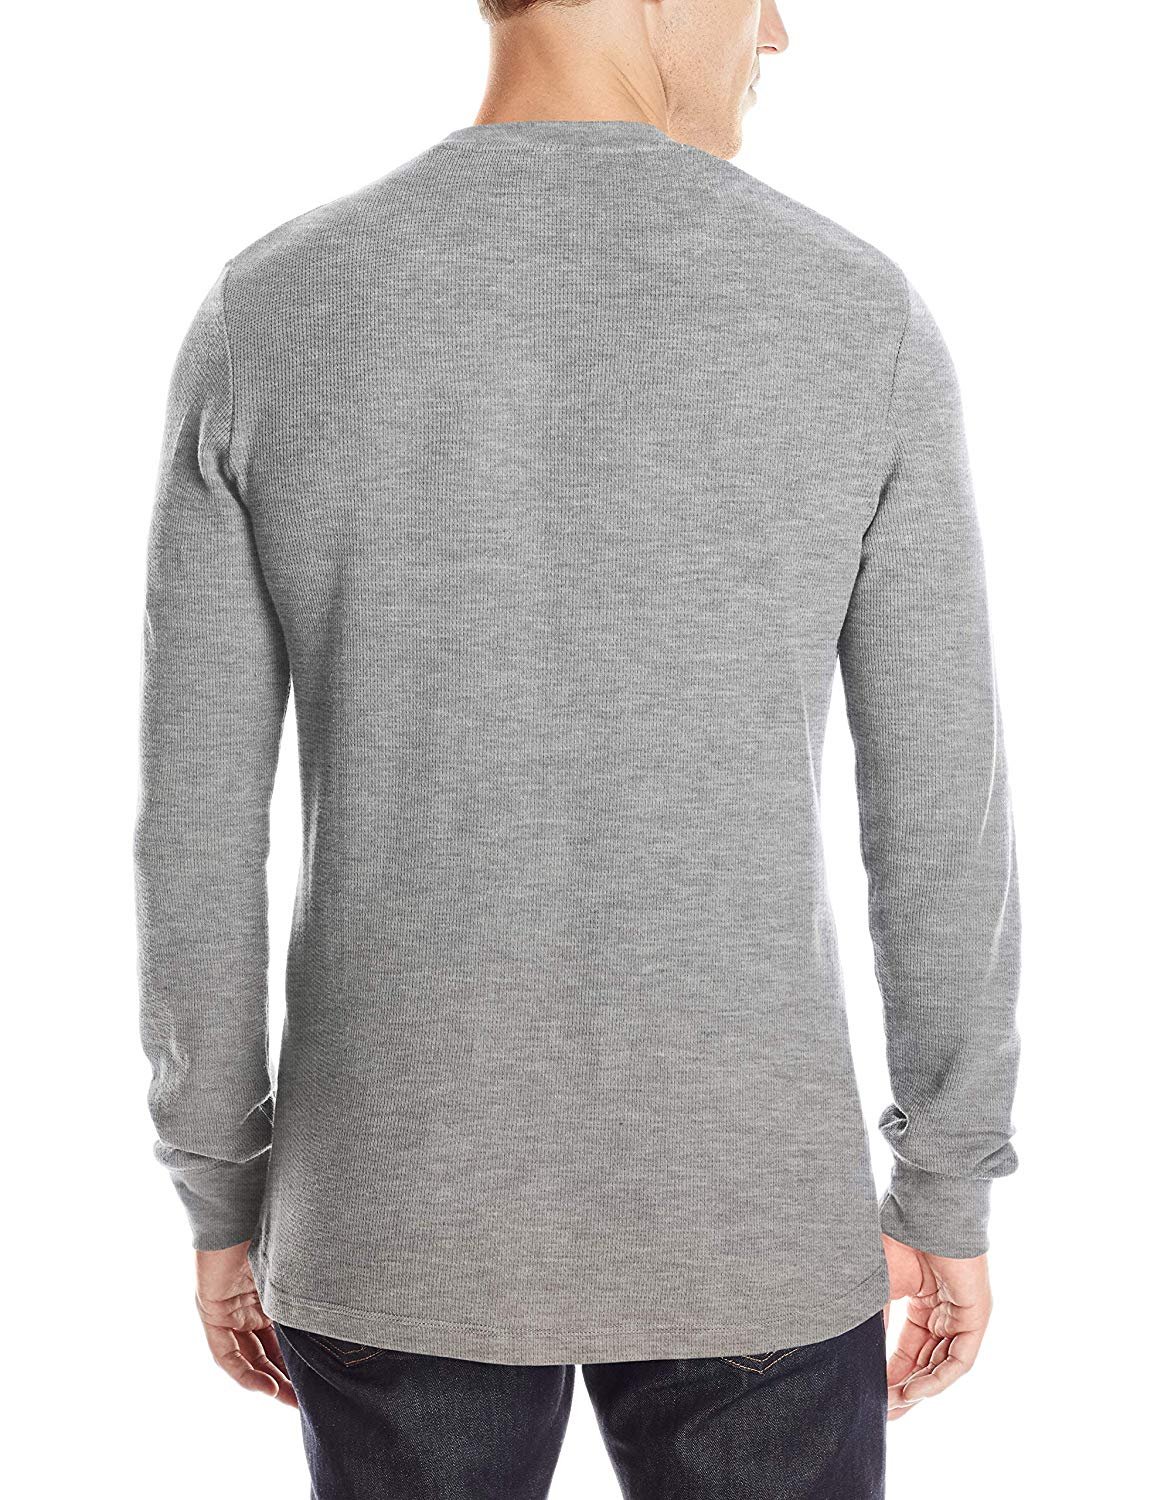 U.S POLO ASSN Long Sleeve Crew Neck Solid Thermal Shirt